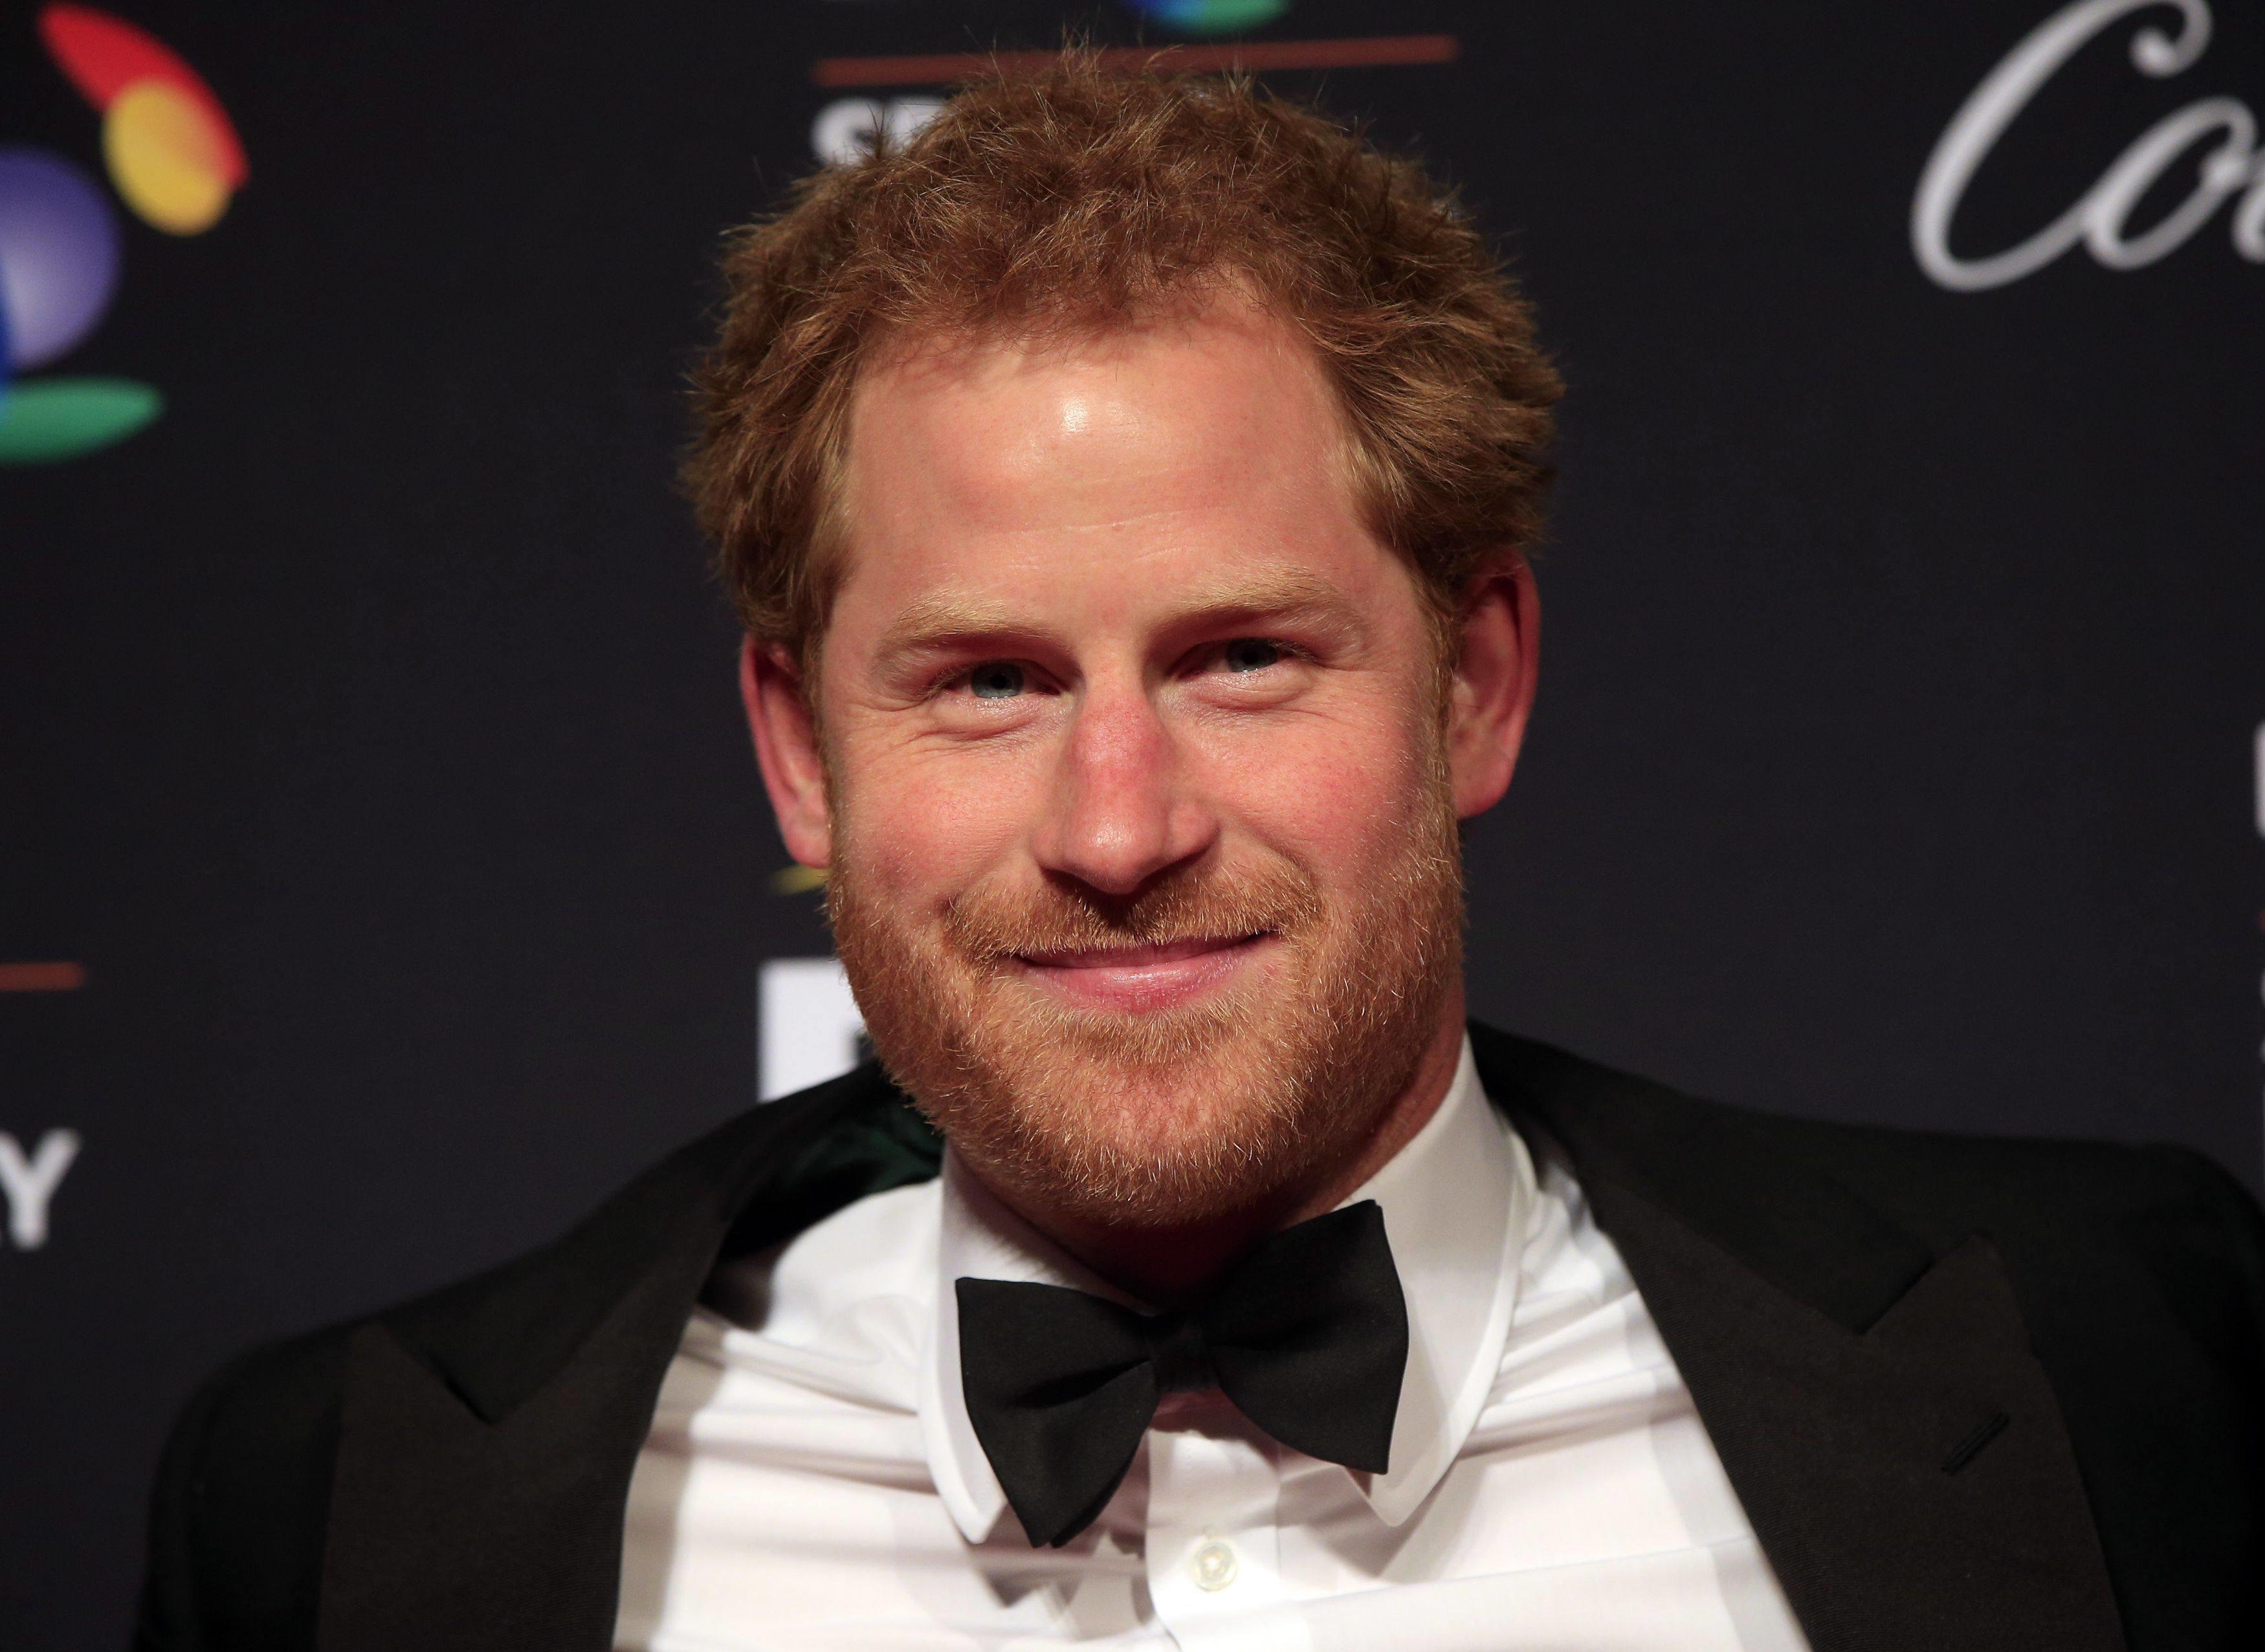 Prince Henry Of Wales Wallpaper